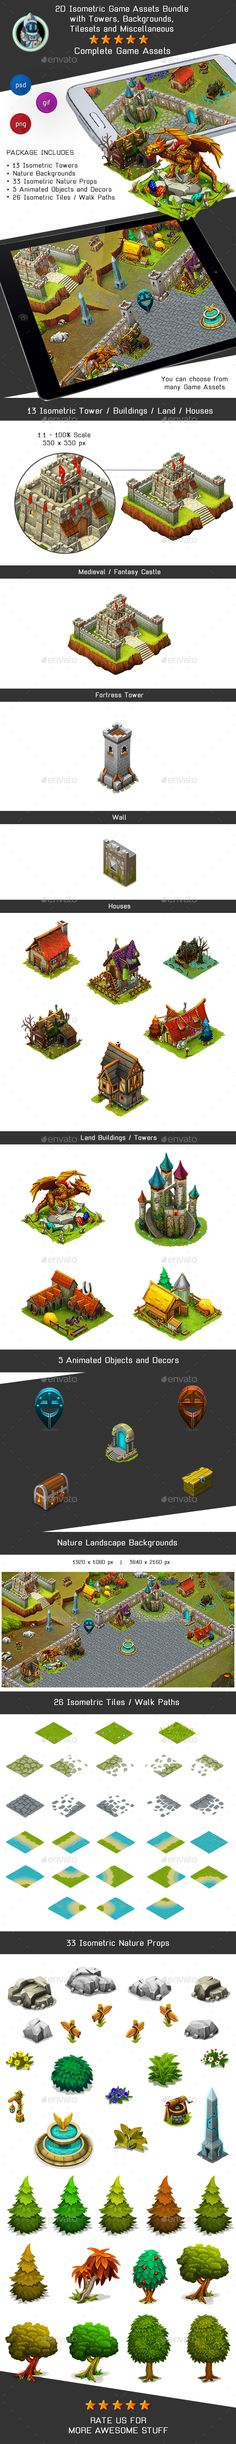 Isometric Game Kit 1 of 3 - Towers, Backgrounds, Tilesets & more - Game Kits Game Assets